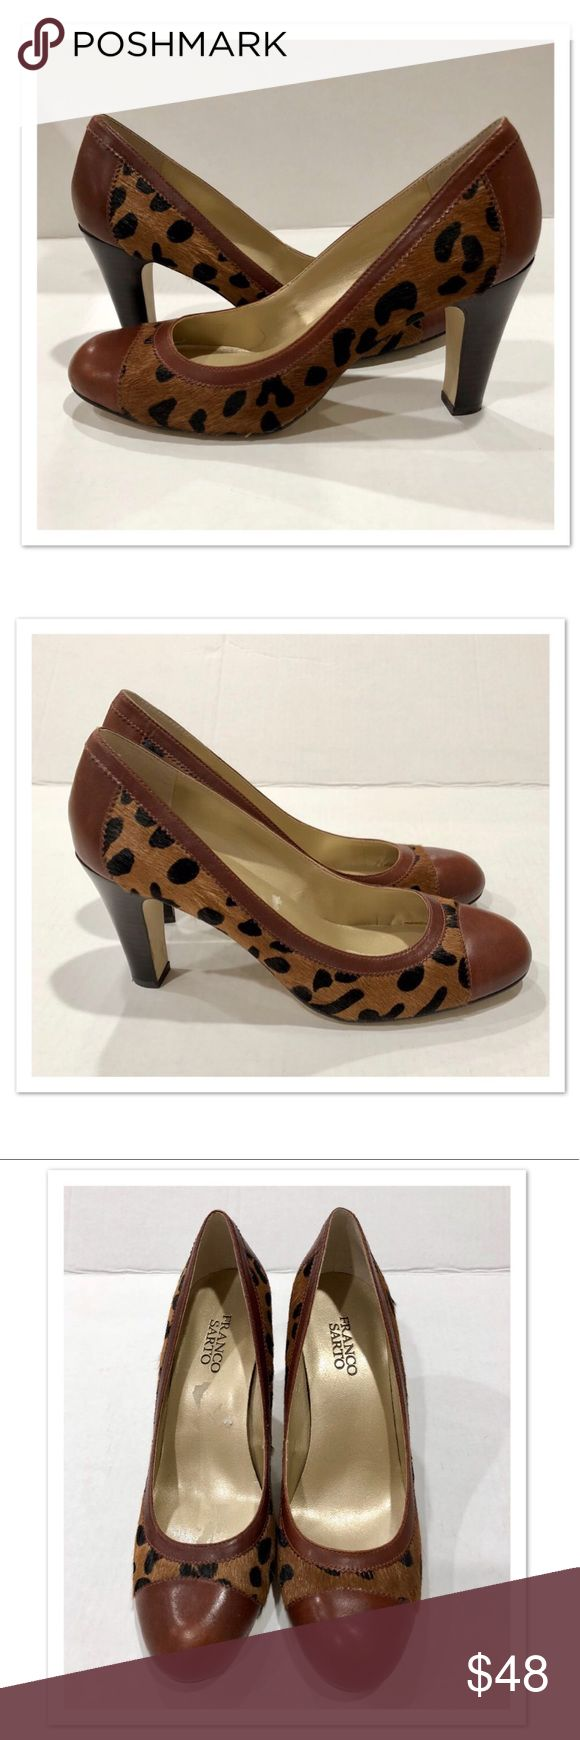 """Franco Sarto Leopard Print Pumps Franco Sarto Leopard Print Pumps. Excellent condition! One small area of discoloration near the back right shoe. Heels are in great shape. Bottoms show light wear. 3.5"""" heel. Show pads were removed so there's a little sticky residue that can easily be rubbed away. 100% Genuine leather upper. BEAUTIFUL in person!! Franco Sarto Shoes Heels"""